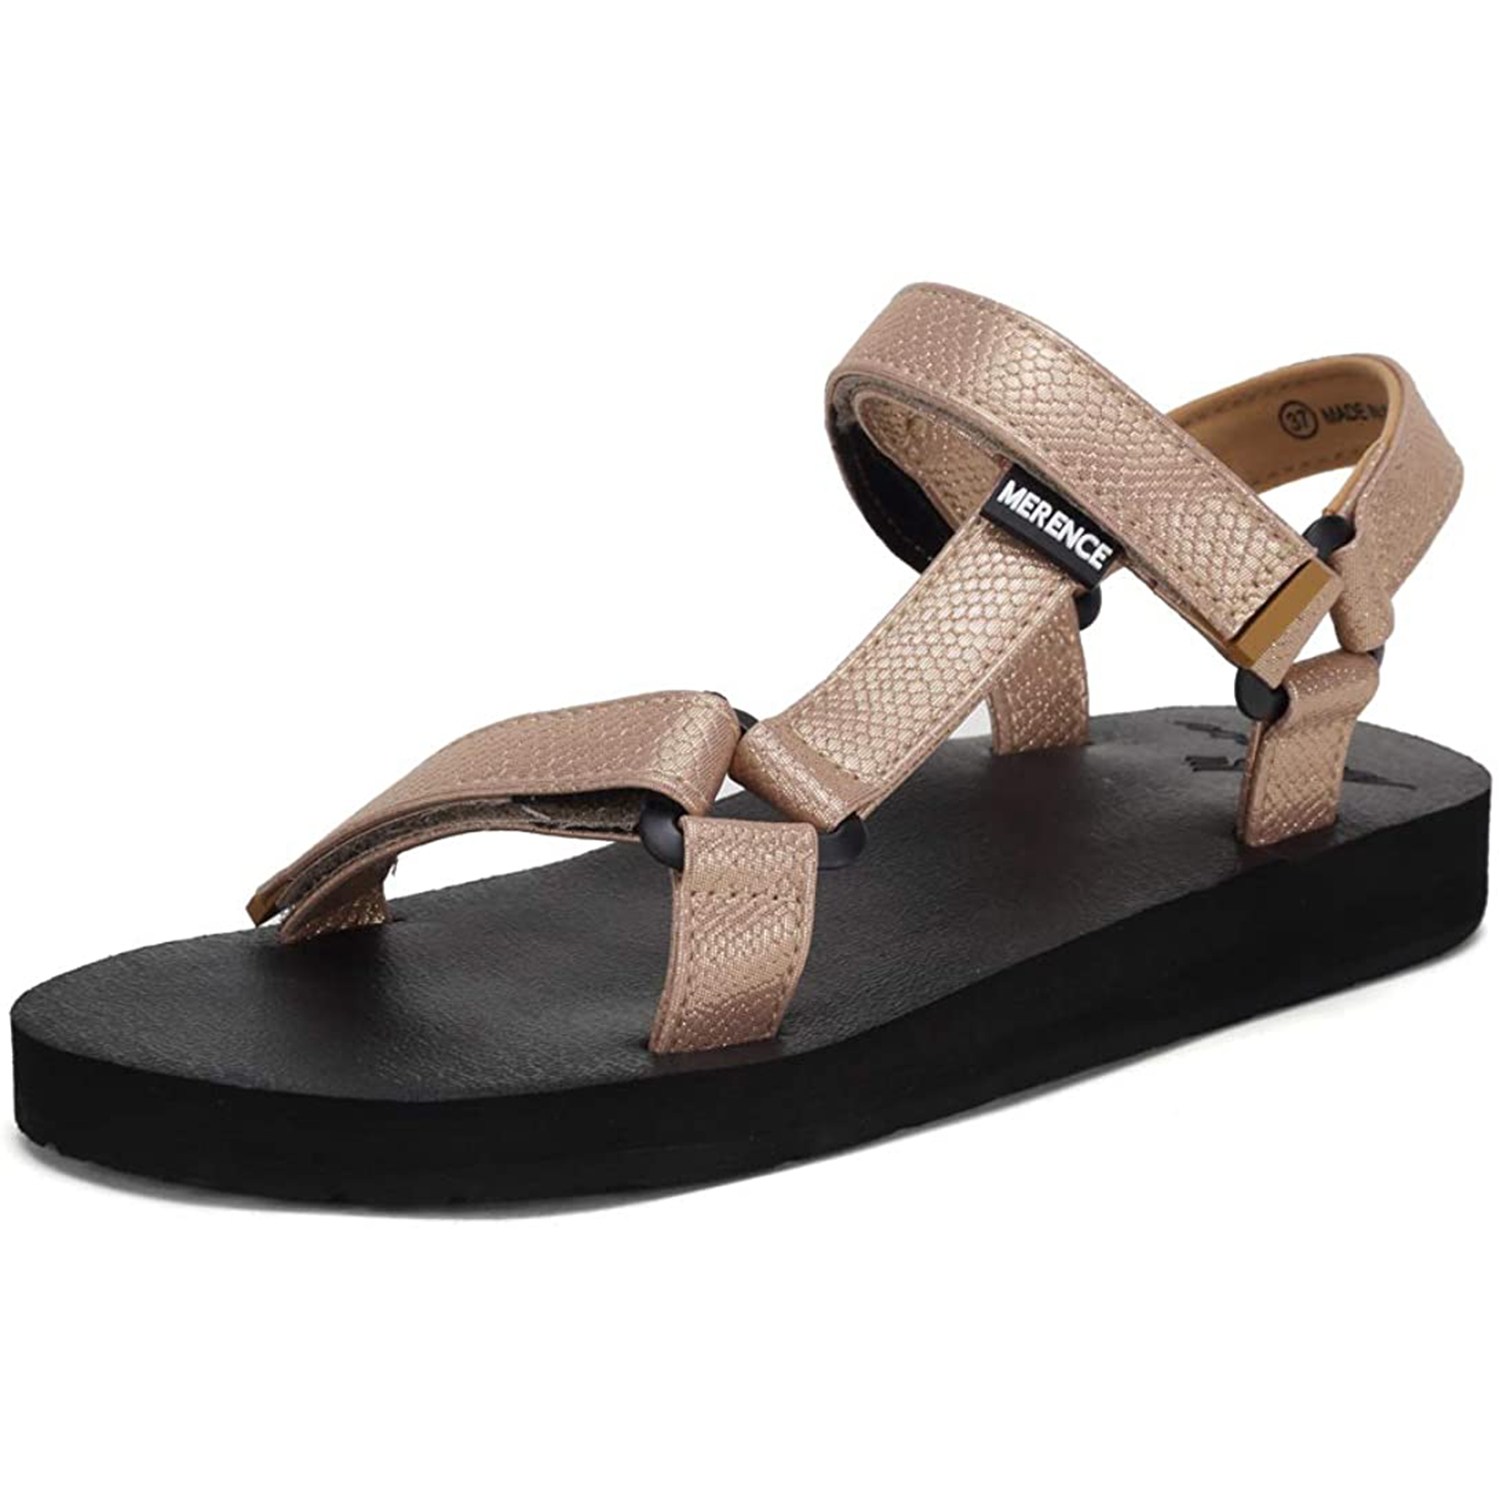 Sandals Sport Sandals with Yoga Mat Insole Hiking